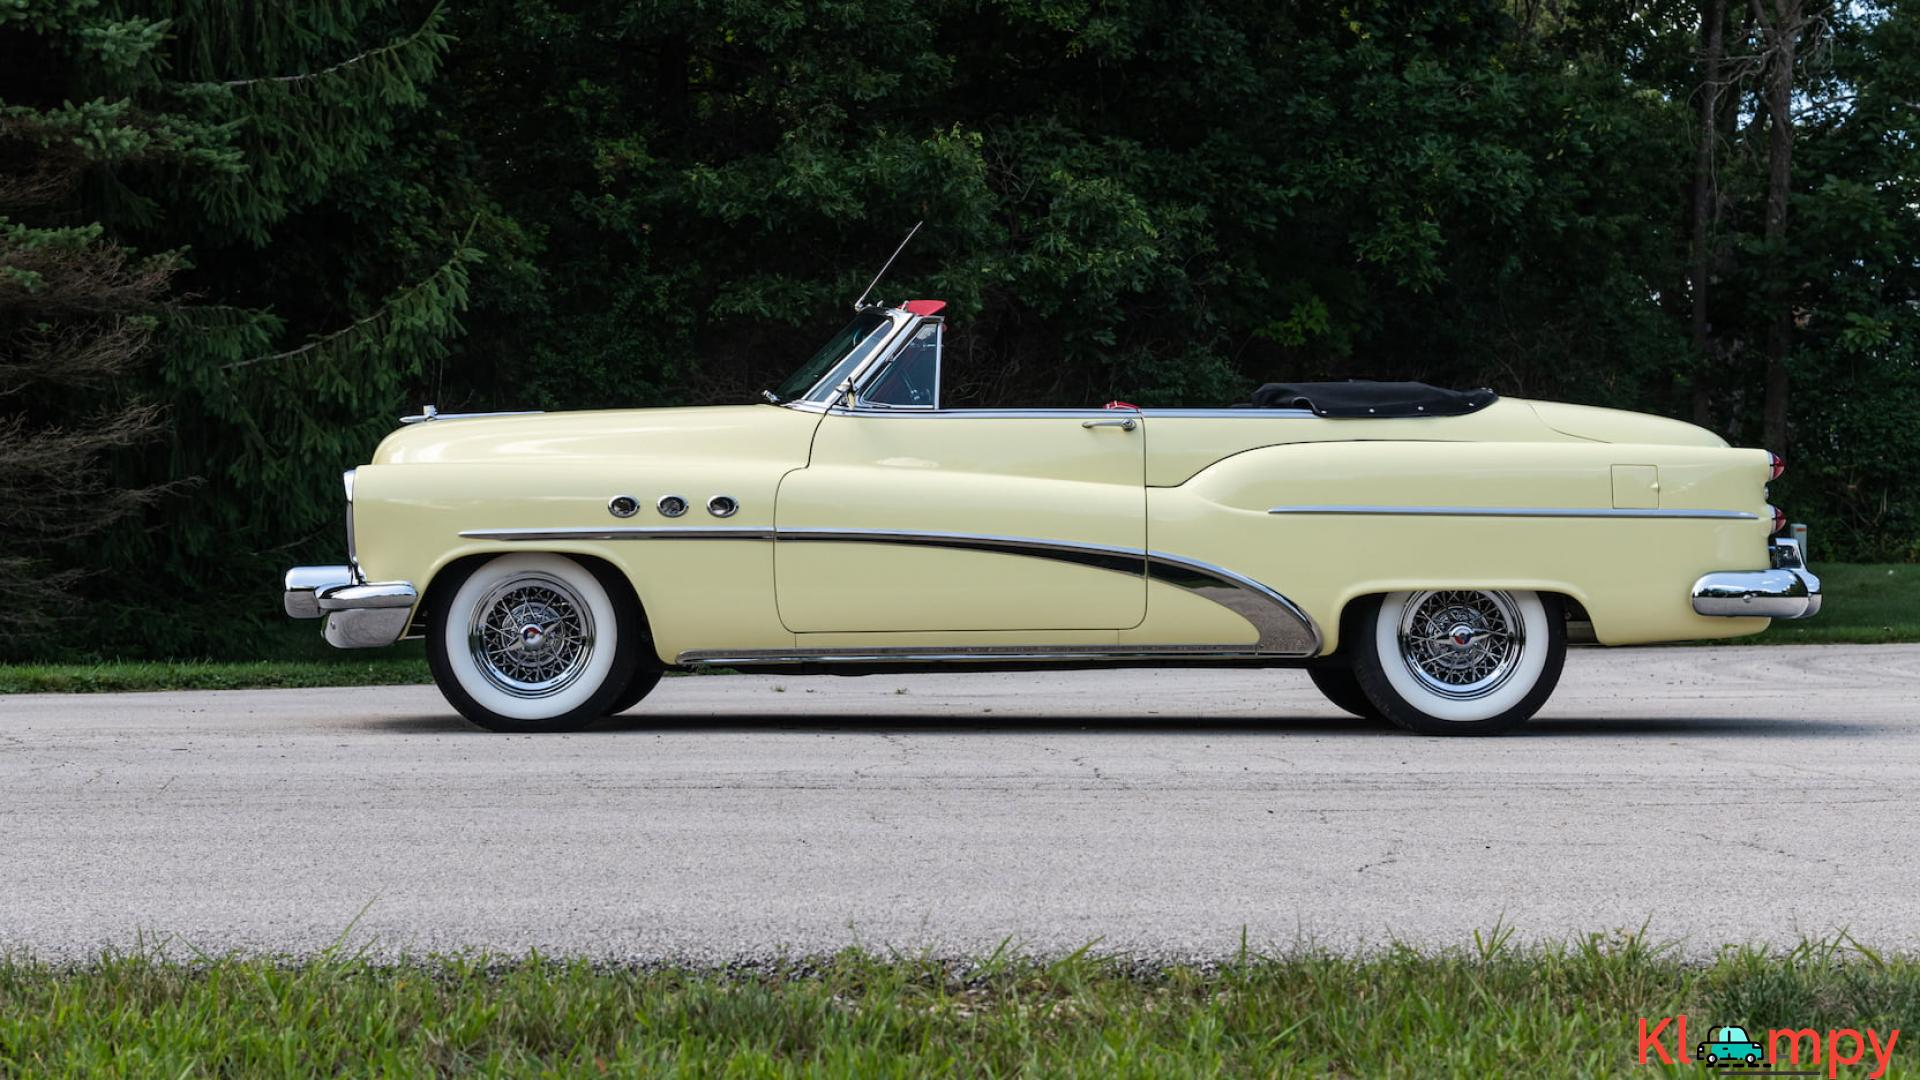 1953 Buick Super Eight Convertible - 9/15